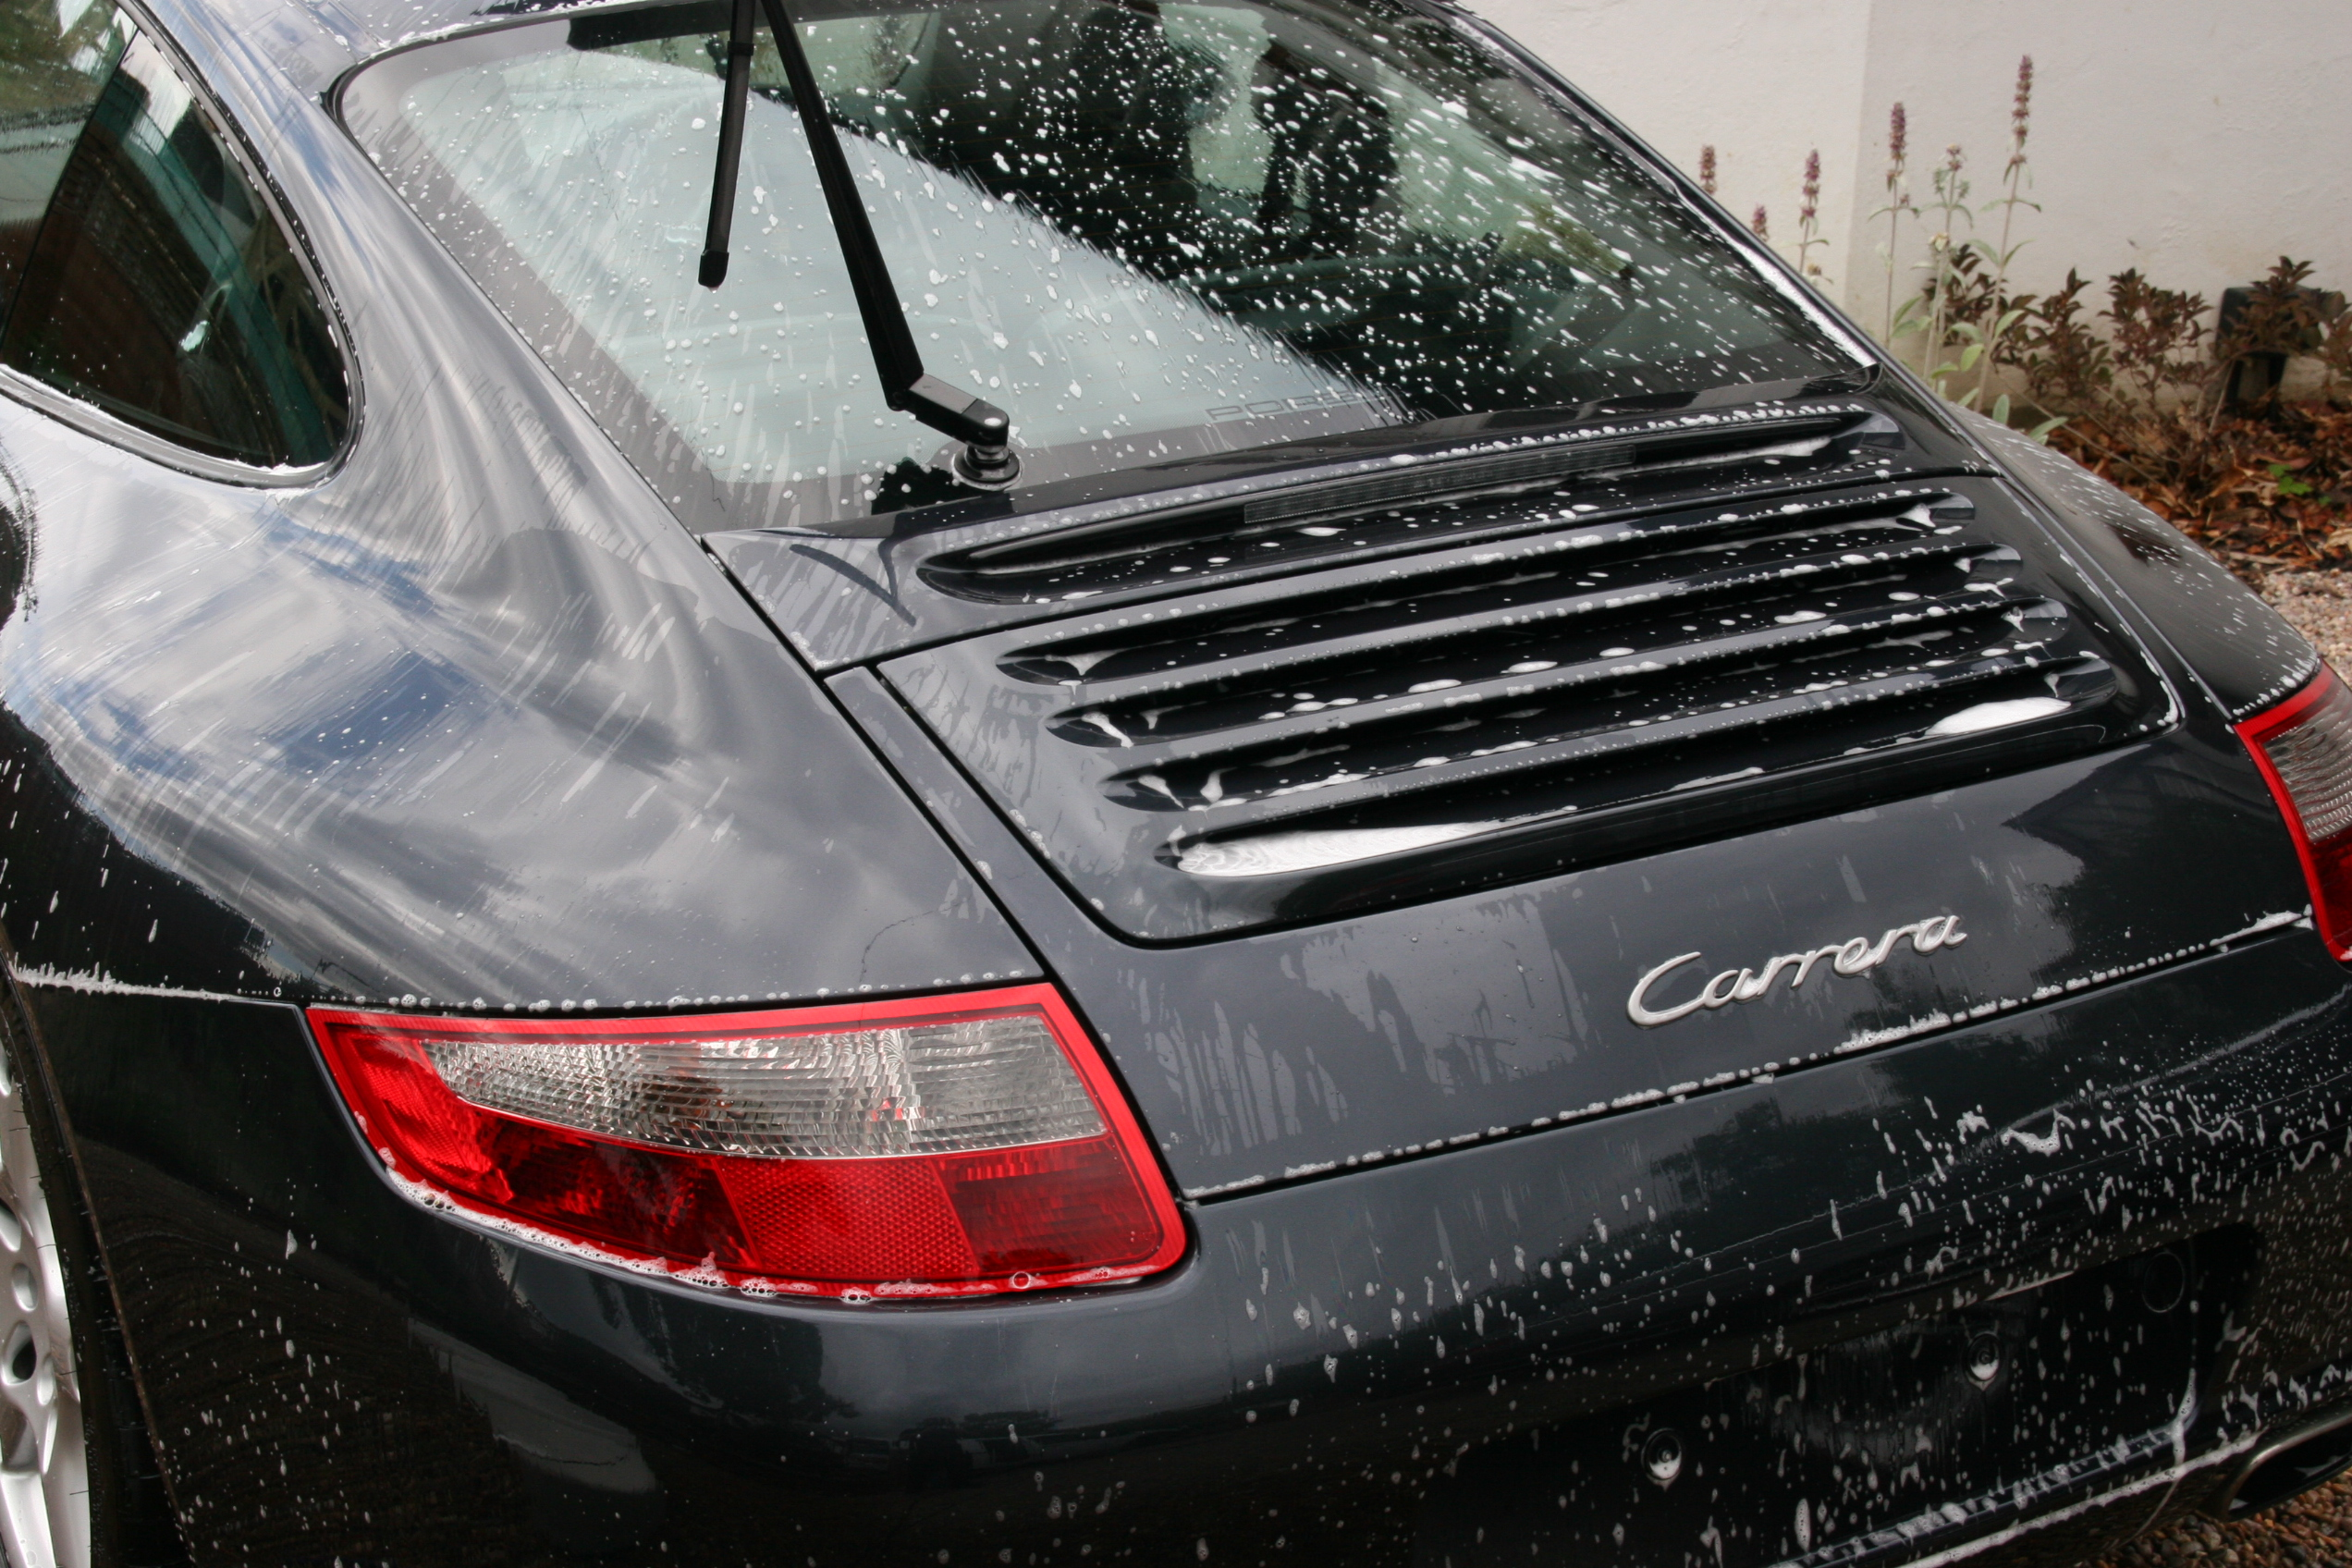 porsche-carrera-car-detailing-surrey-all-that-gleams-18_0